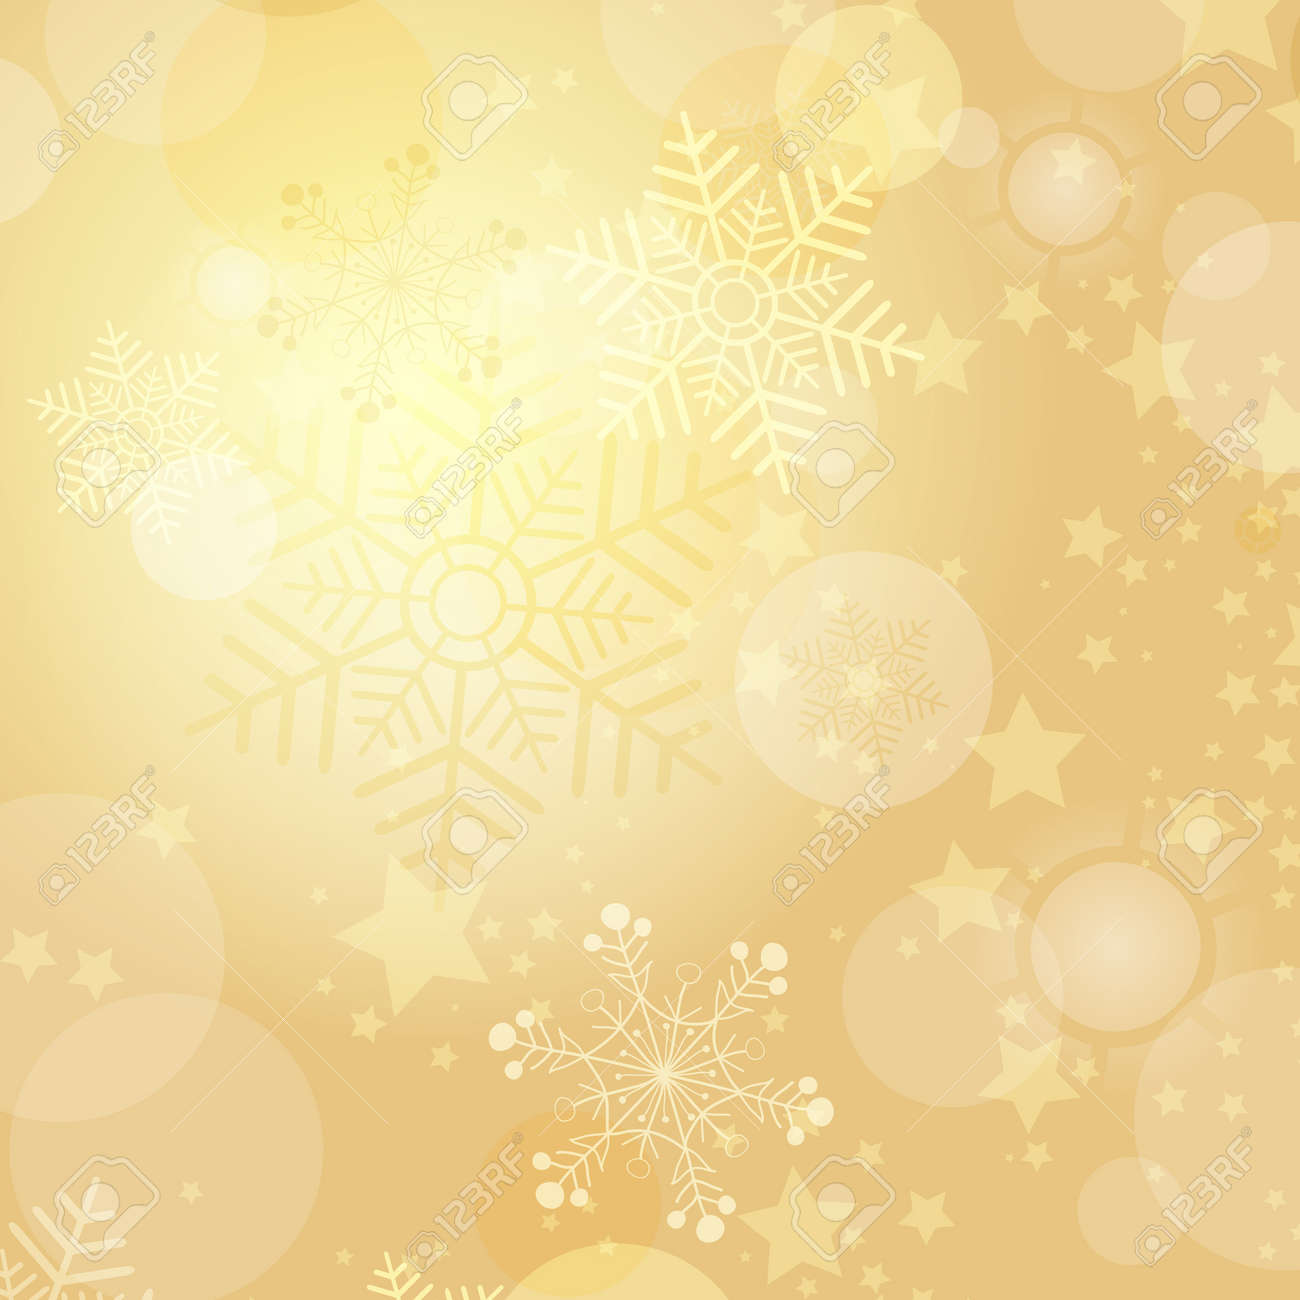 Christmas gold frame with balls and snowflakes (vector eps 10) - 33569557